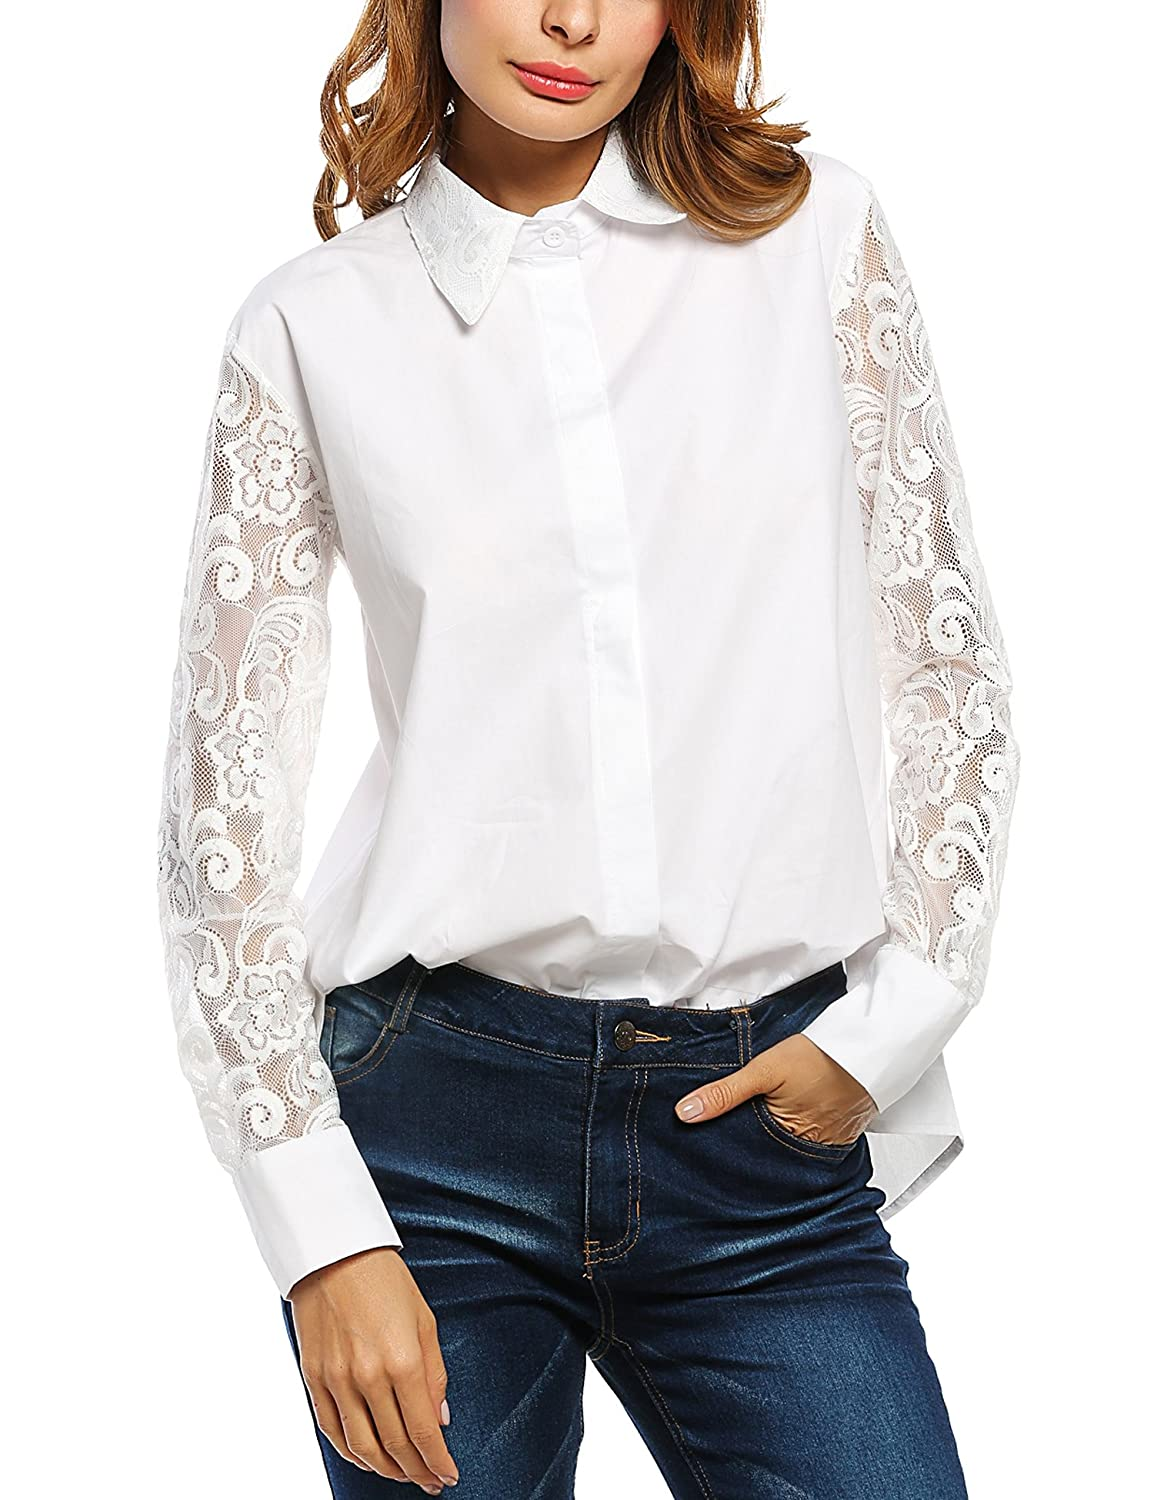 Wonder Woman Movie 1918 Clothing: Diana's London Costumes Zeagoo Womens Button Down Shirt Long Sleeve Blouse Patchwork Lace Shirt Top $20.99 AT vintagedancer.com